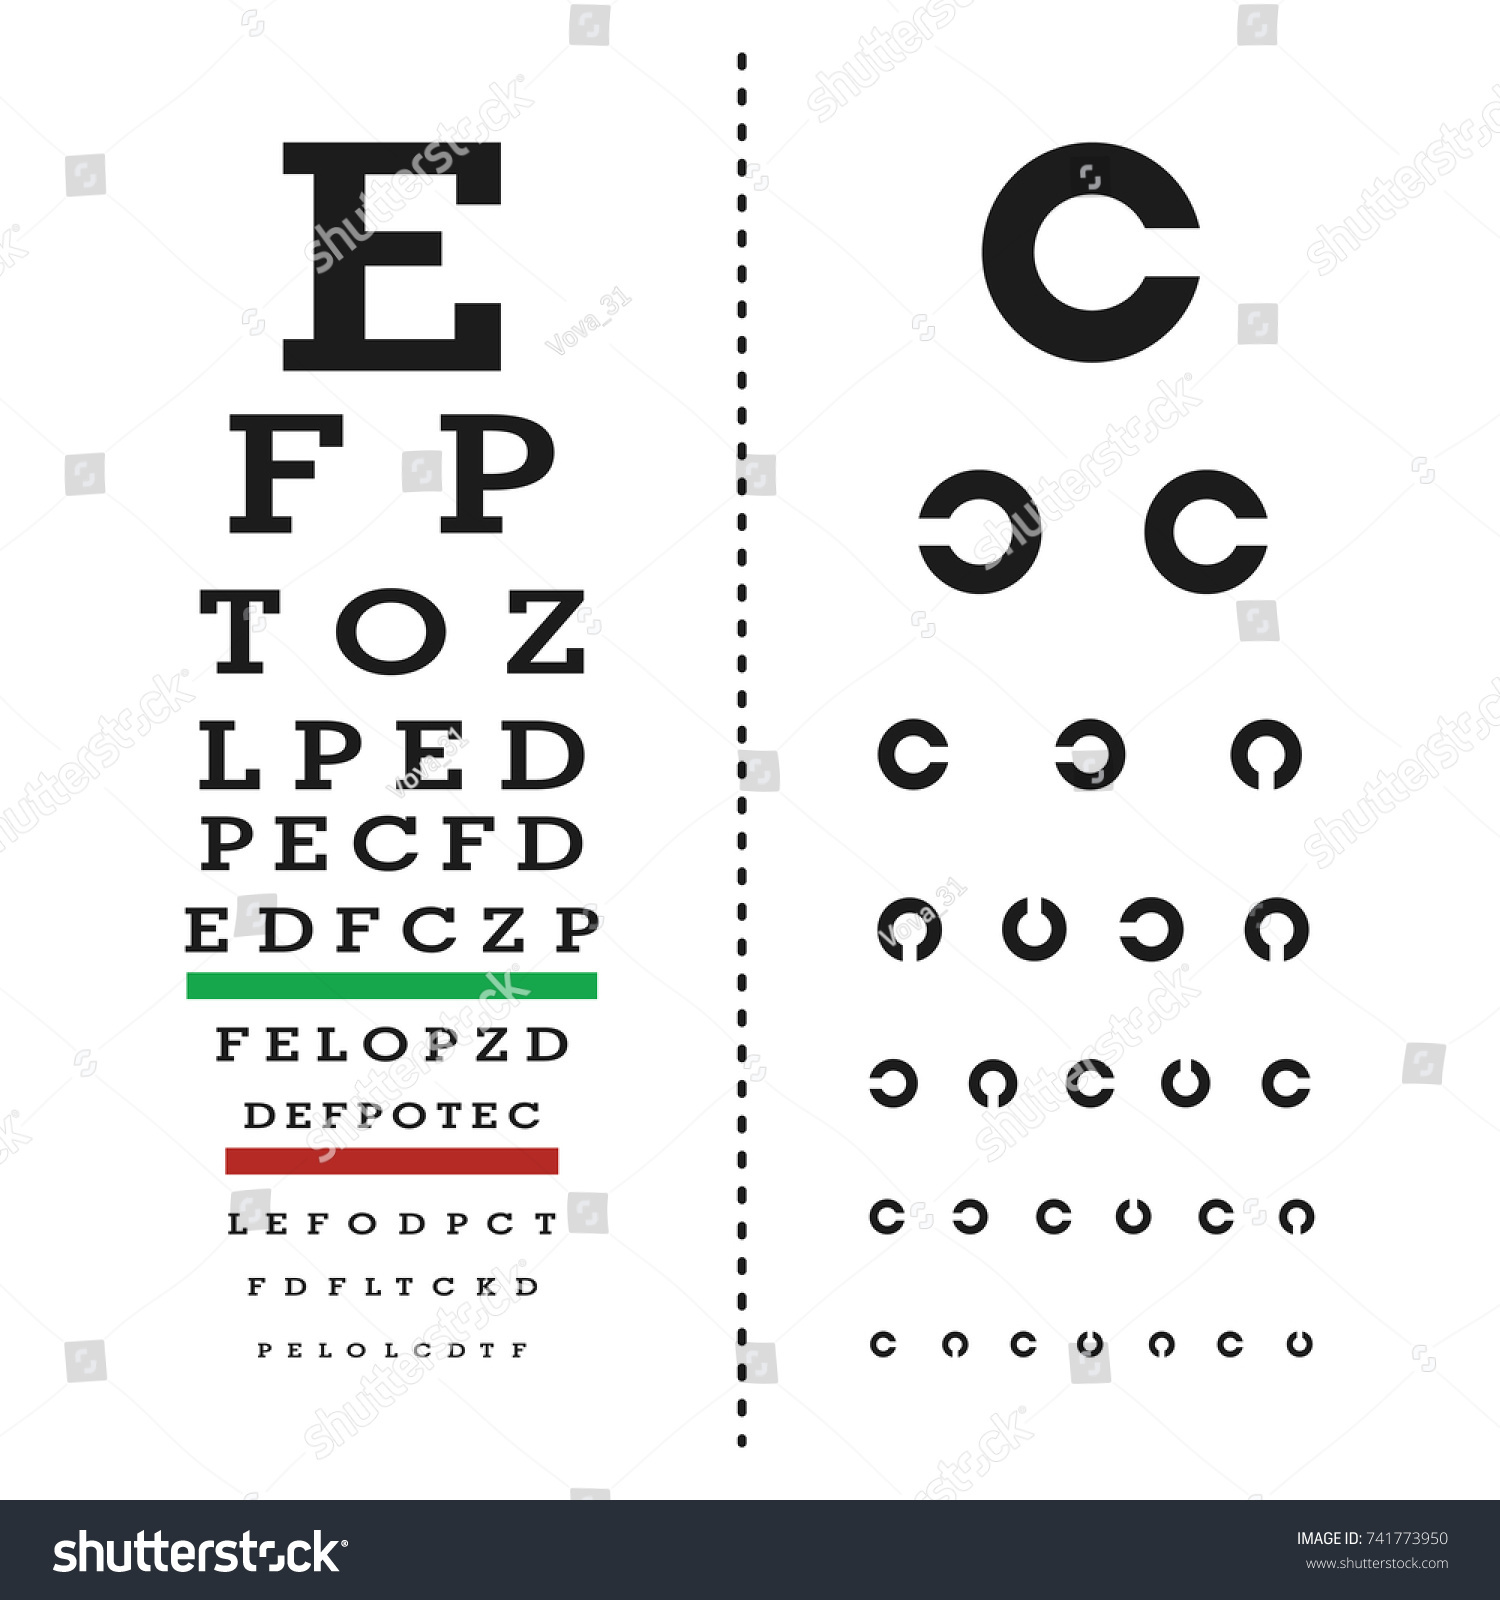 Eyes test chart latin letters stock vector 741773950 shutterstock eyes test chart with latin letters geenschuldenfo Image collections